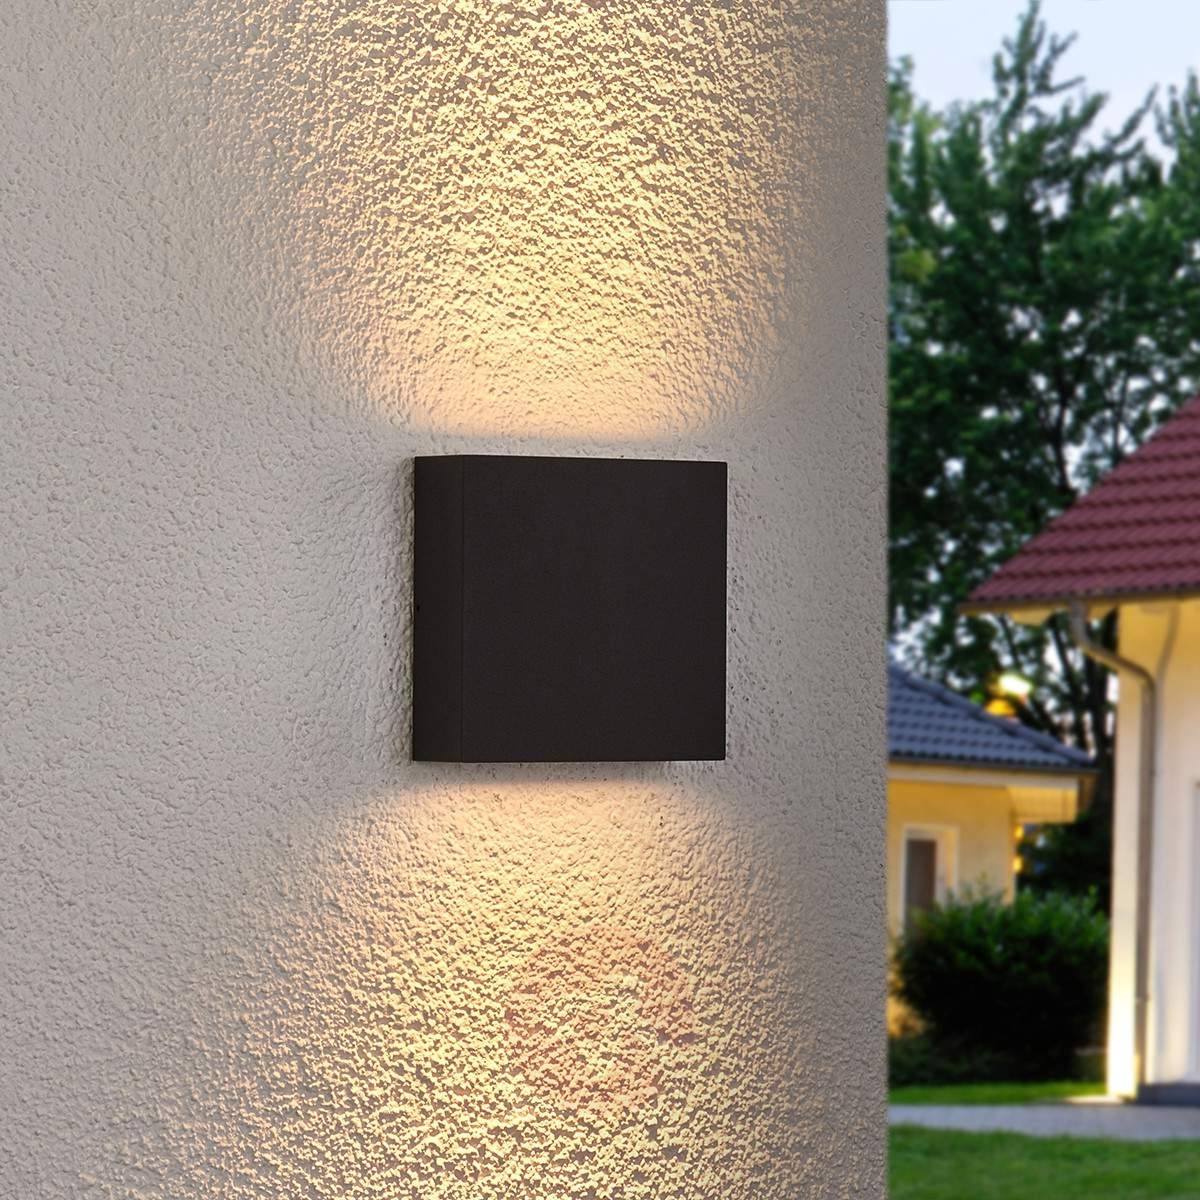 Square Outdoor Wall Lights Throughout Latest Square Led Outdoor Wall Light Trixy, Graphite Grey (View 18 of 20)